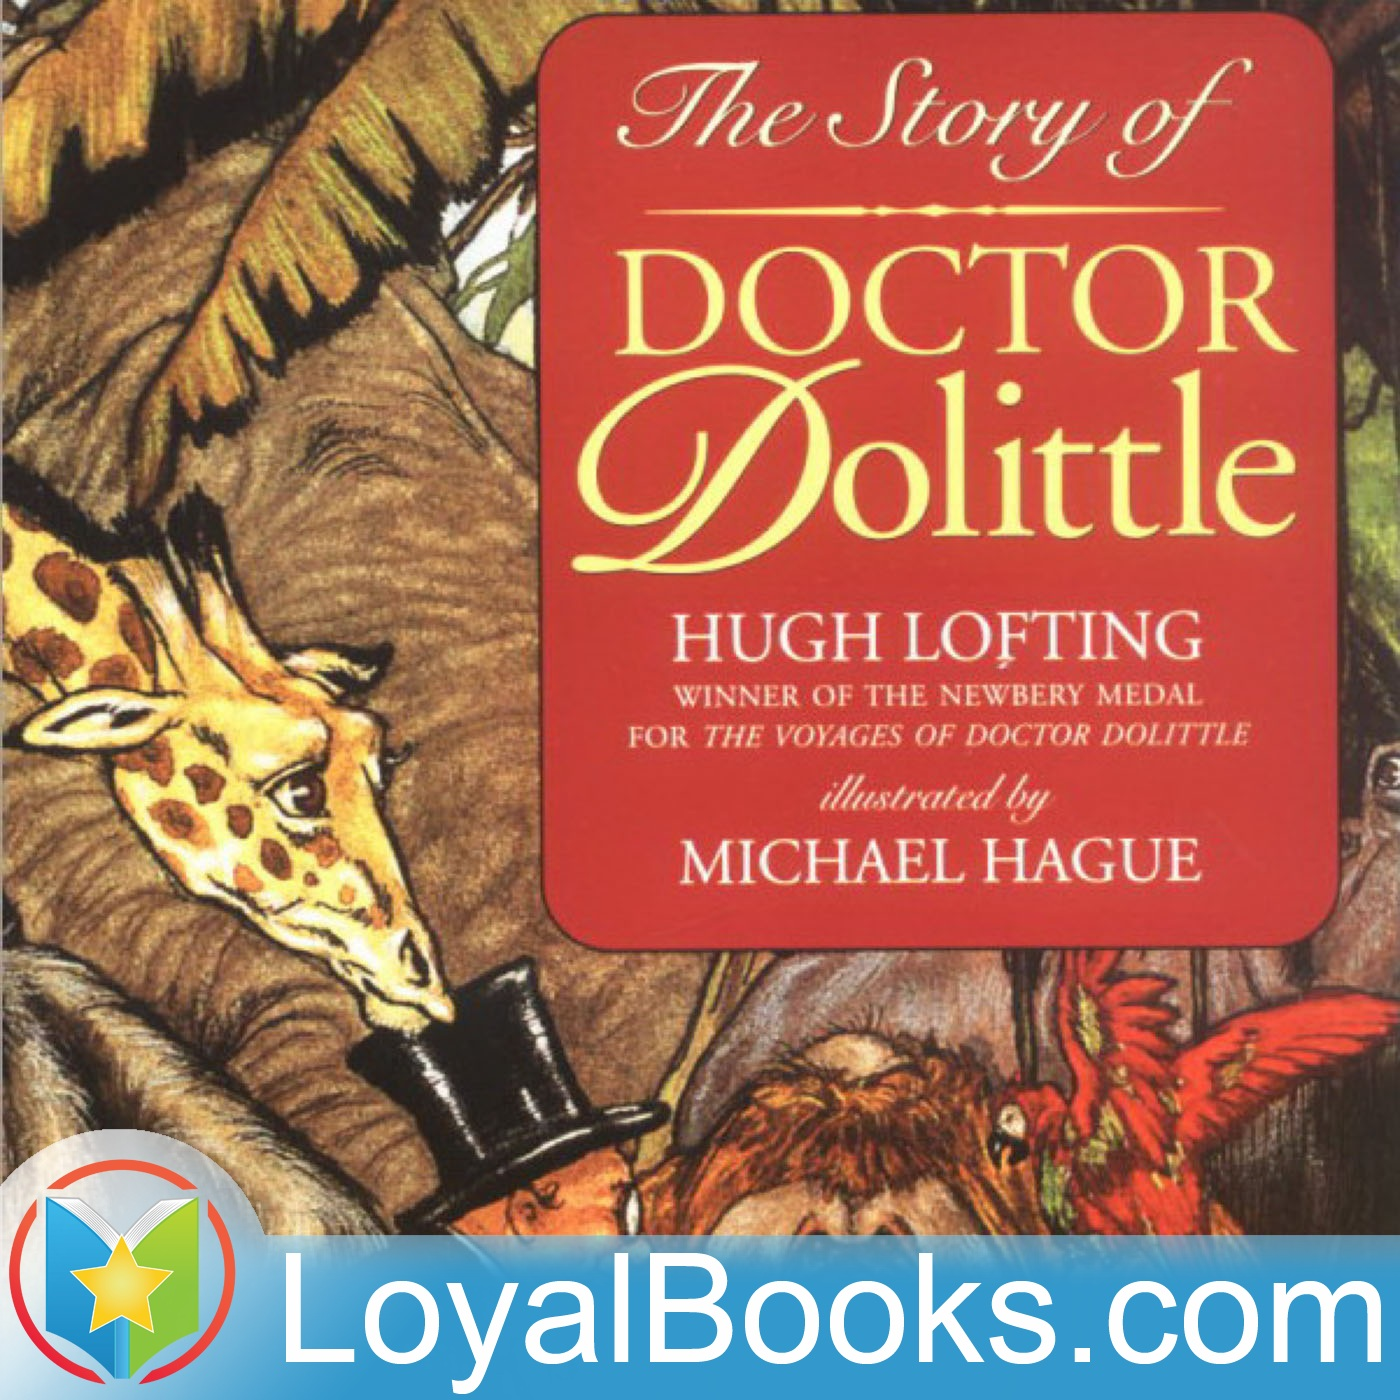 <![CDATA[The Story of Doctor Dolittle by Hugh Lofting]]>